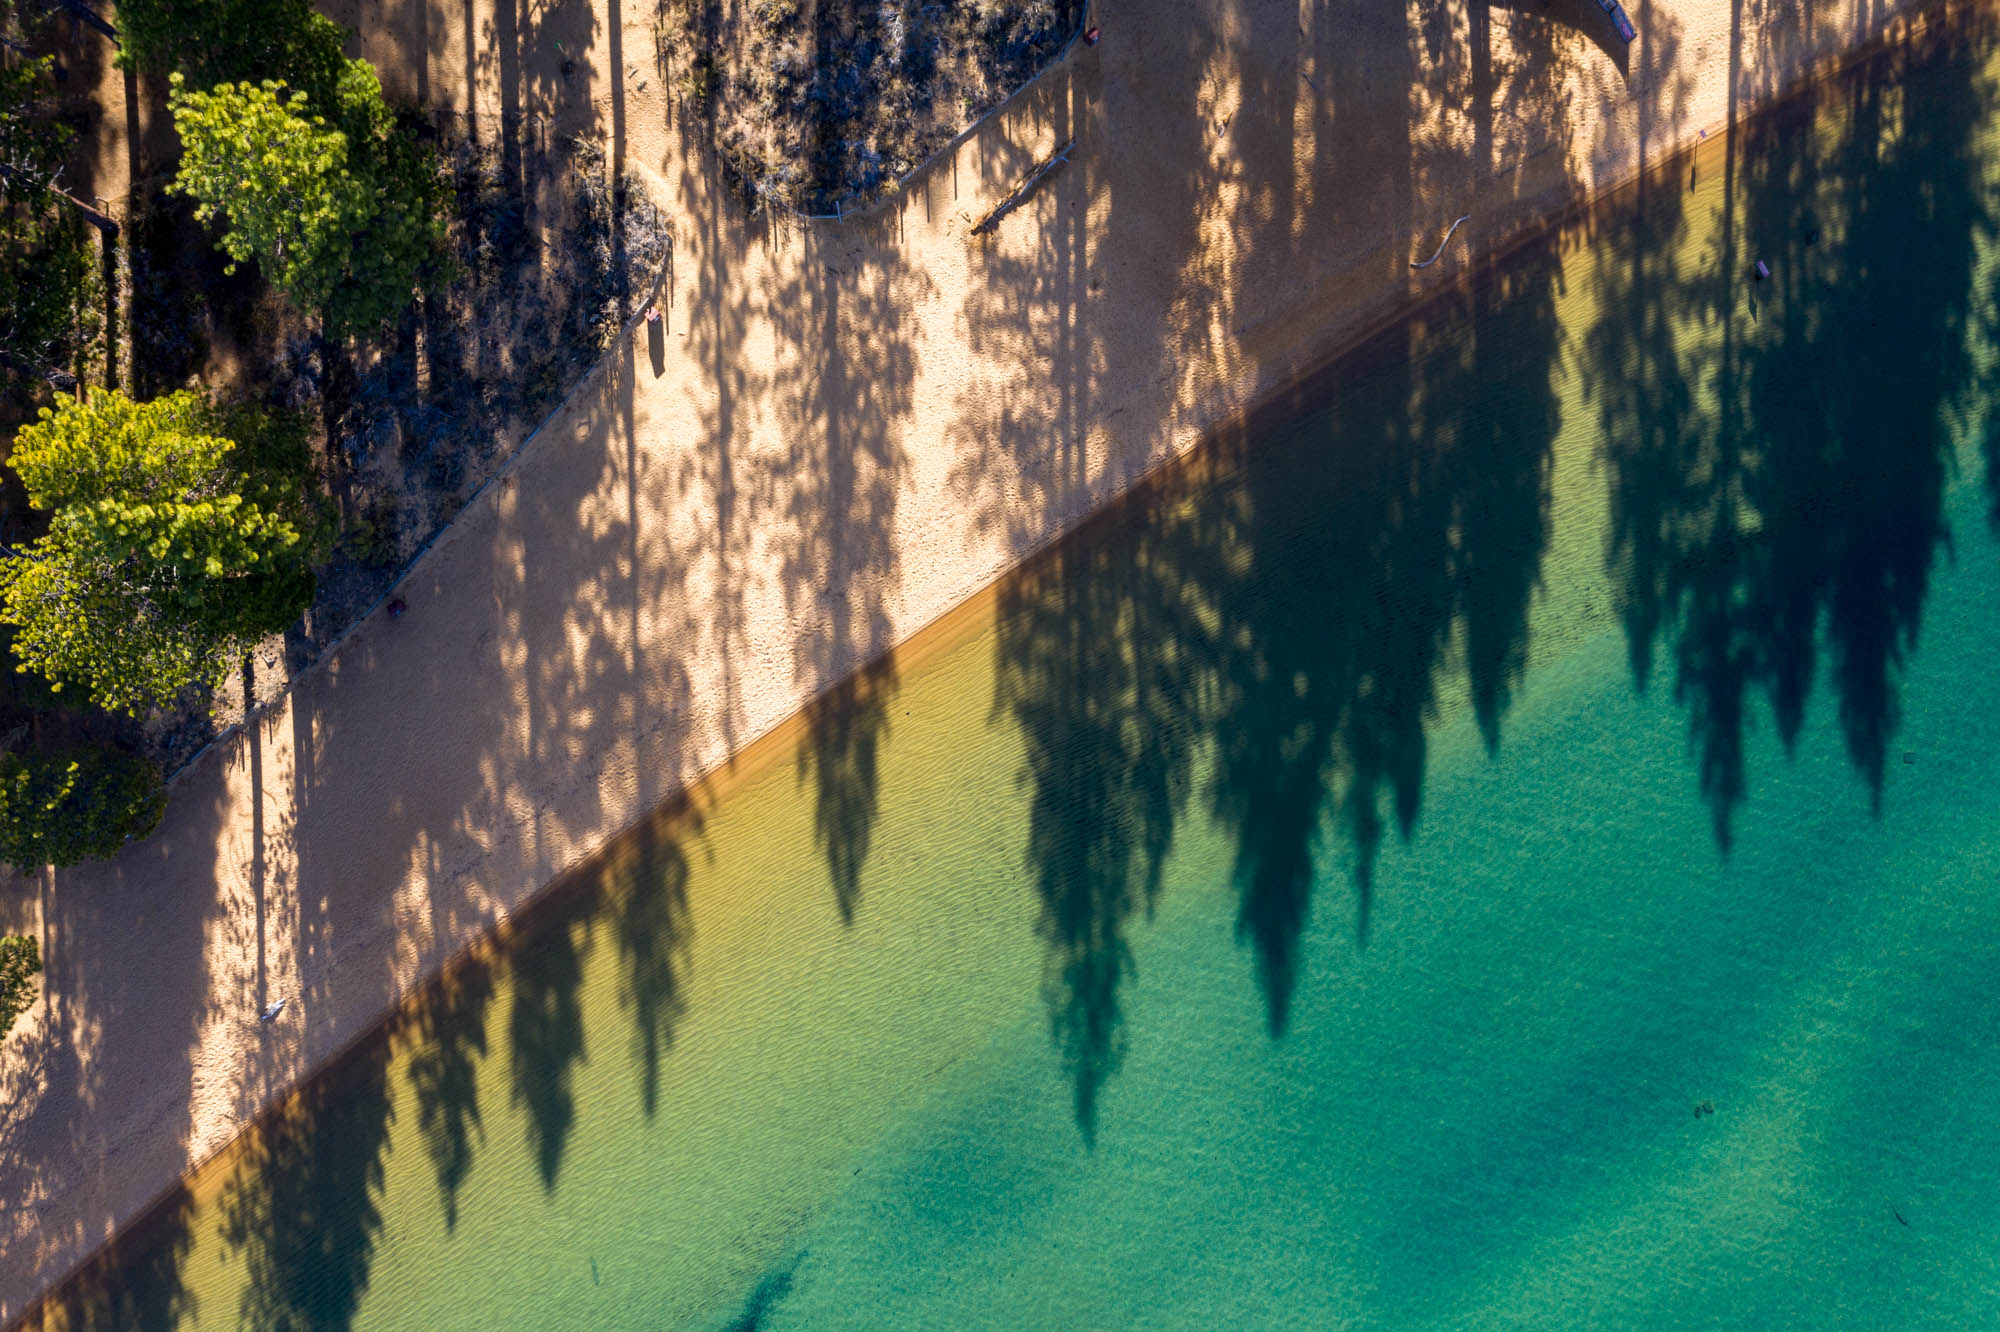 Angled Shadows of Tahoe